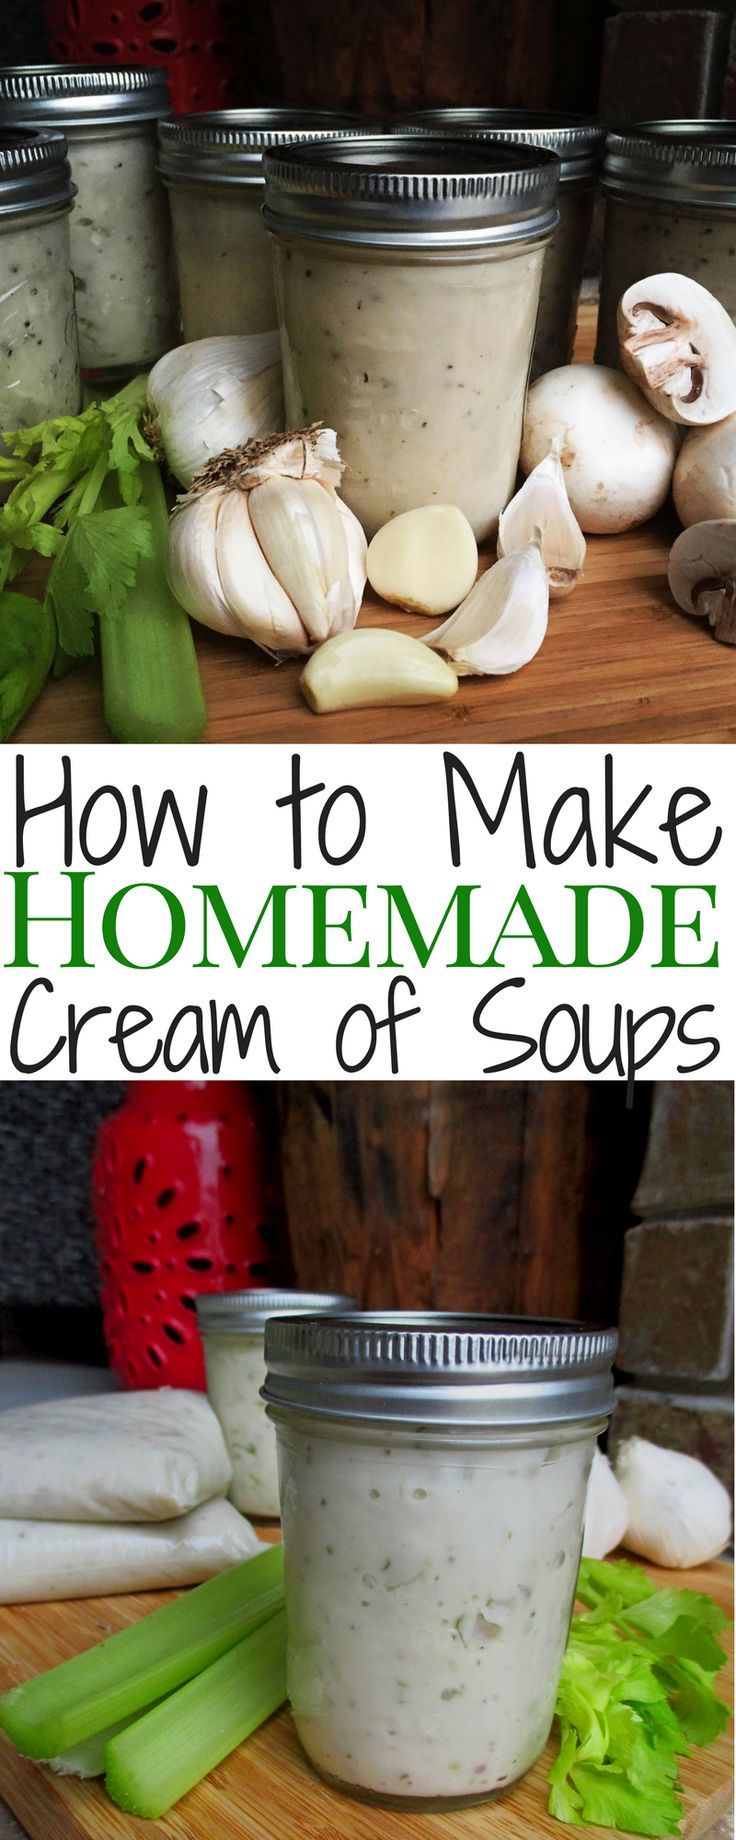 """How to Save Money Making Your Own """"Cream of"""" Soups"""